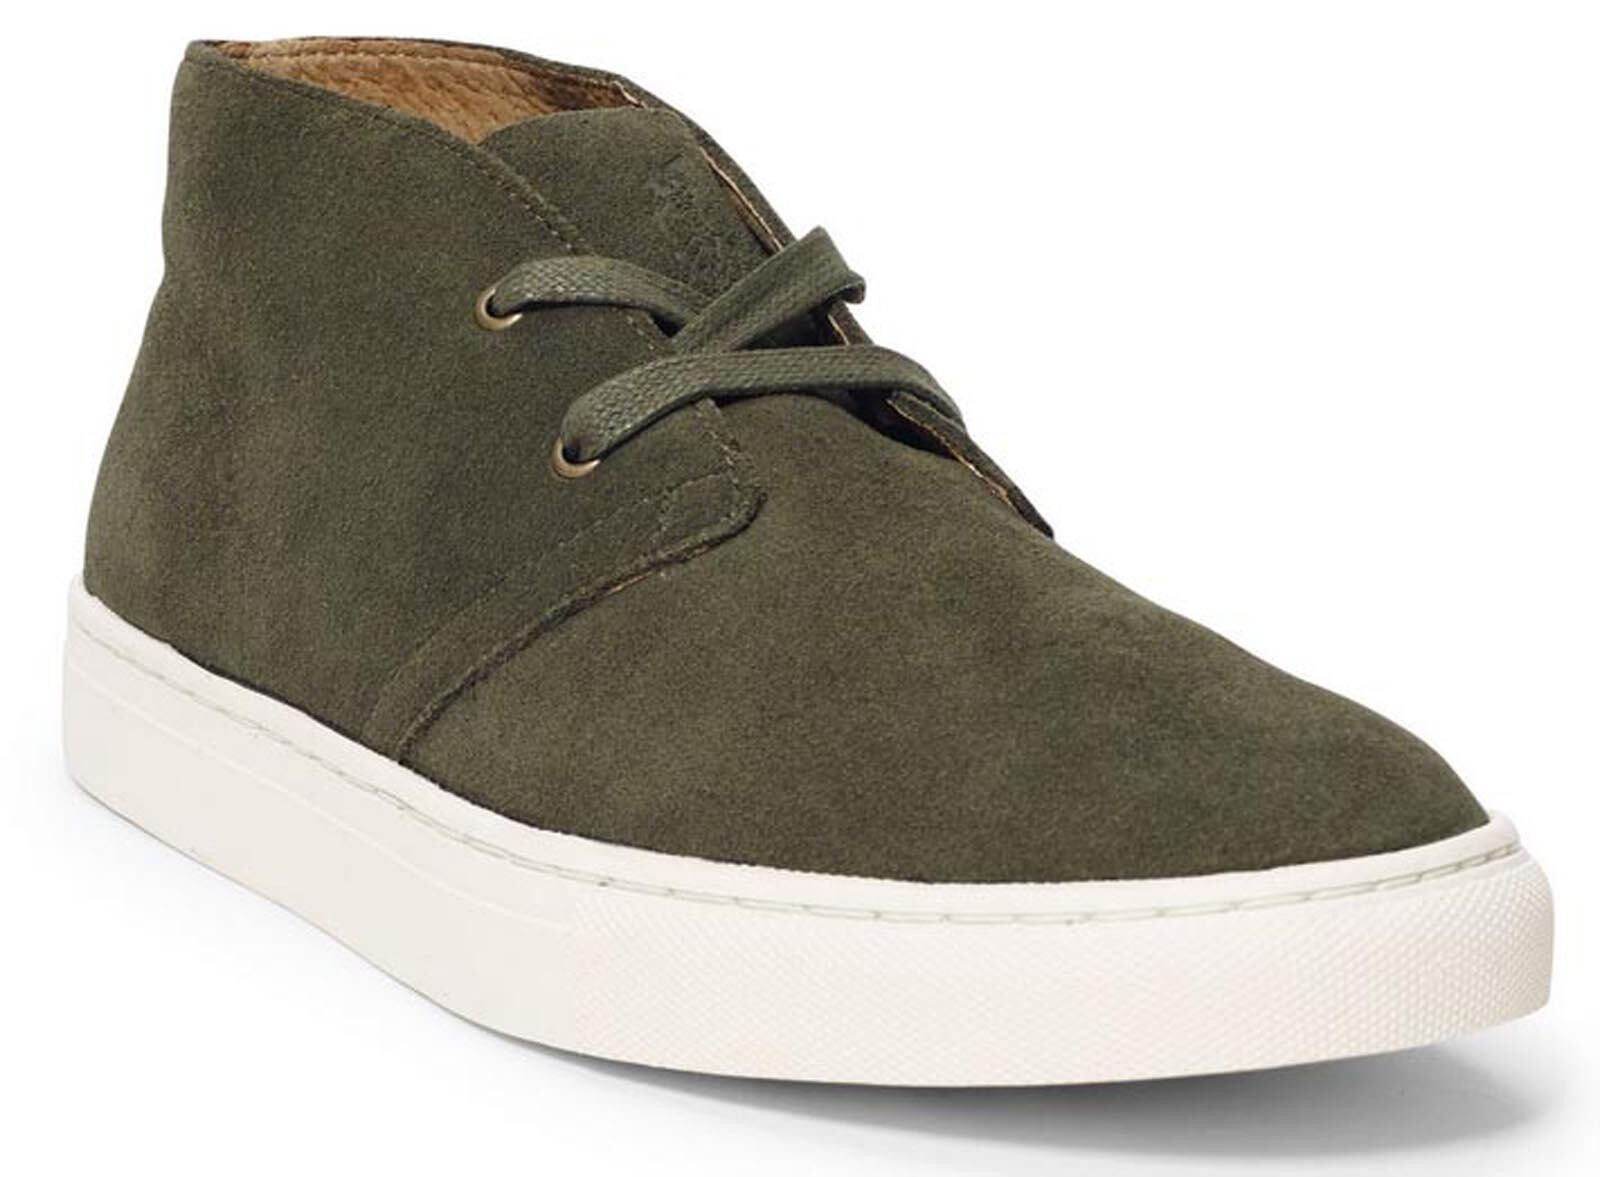 New Polo Ralph Lauren Men 10D CHUKKA Boot Lace Up Casual Fashion Sneaker shoes